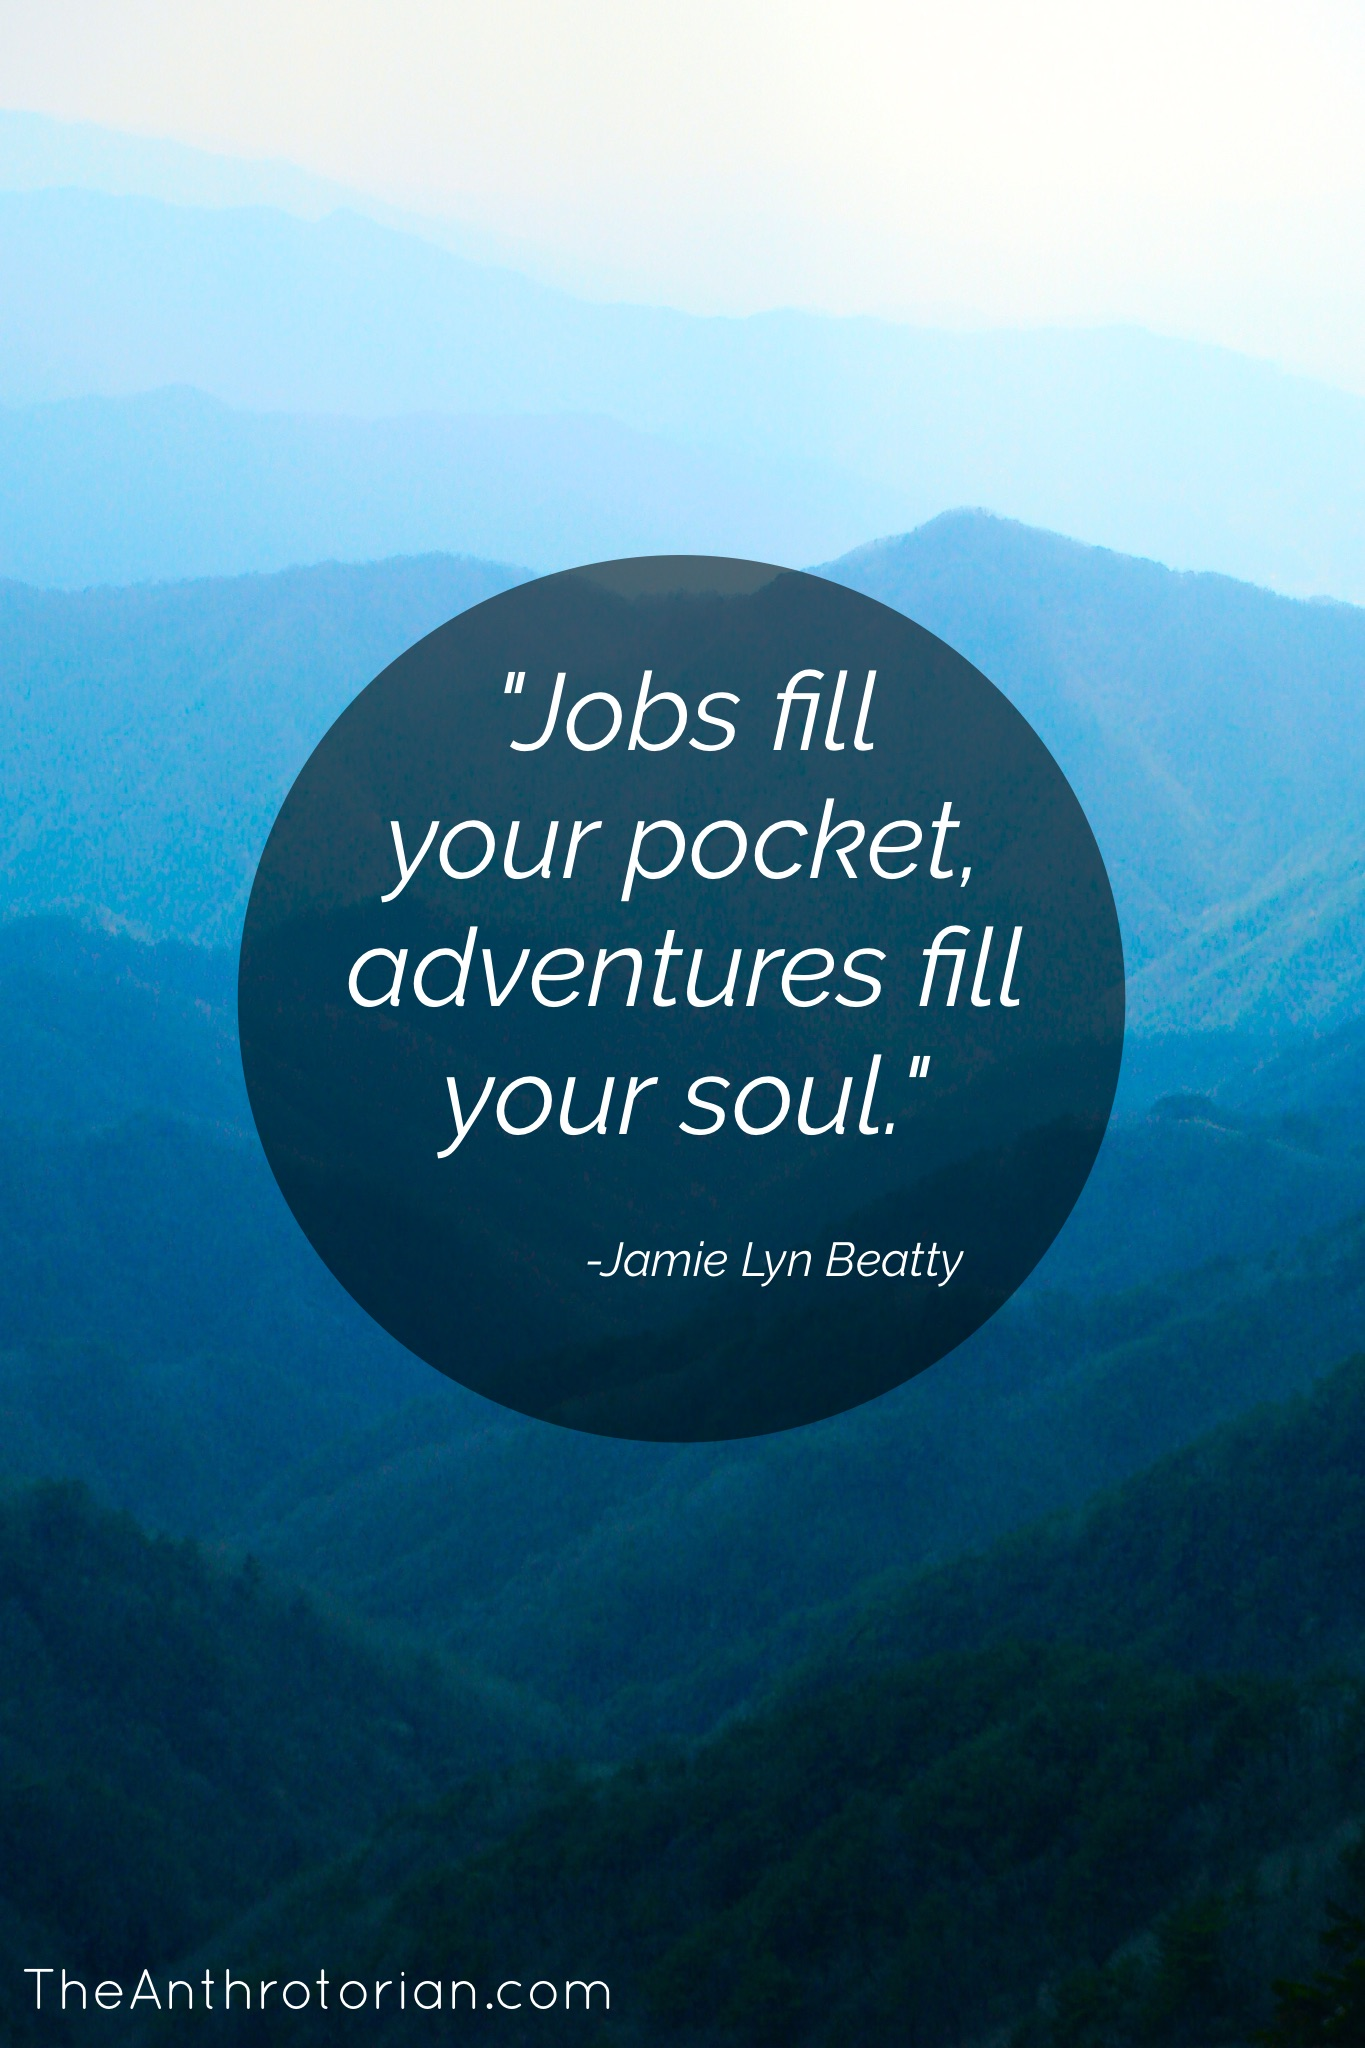 13 Travel Quotes To Inspire Adventure